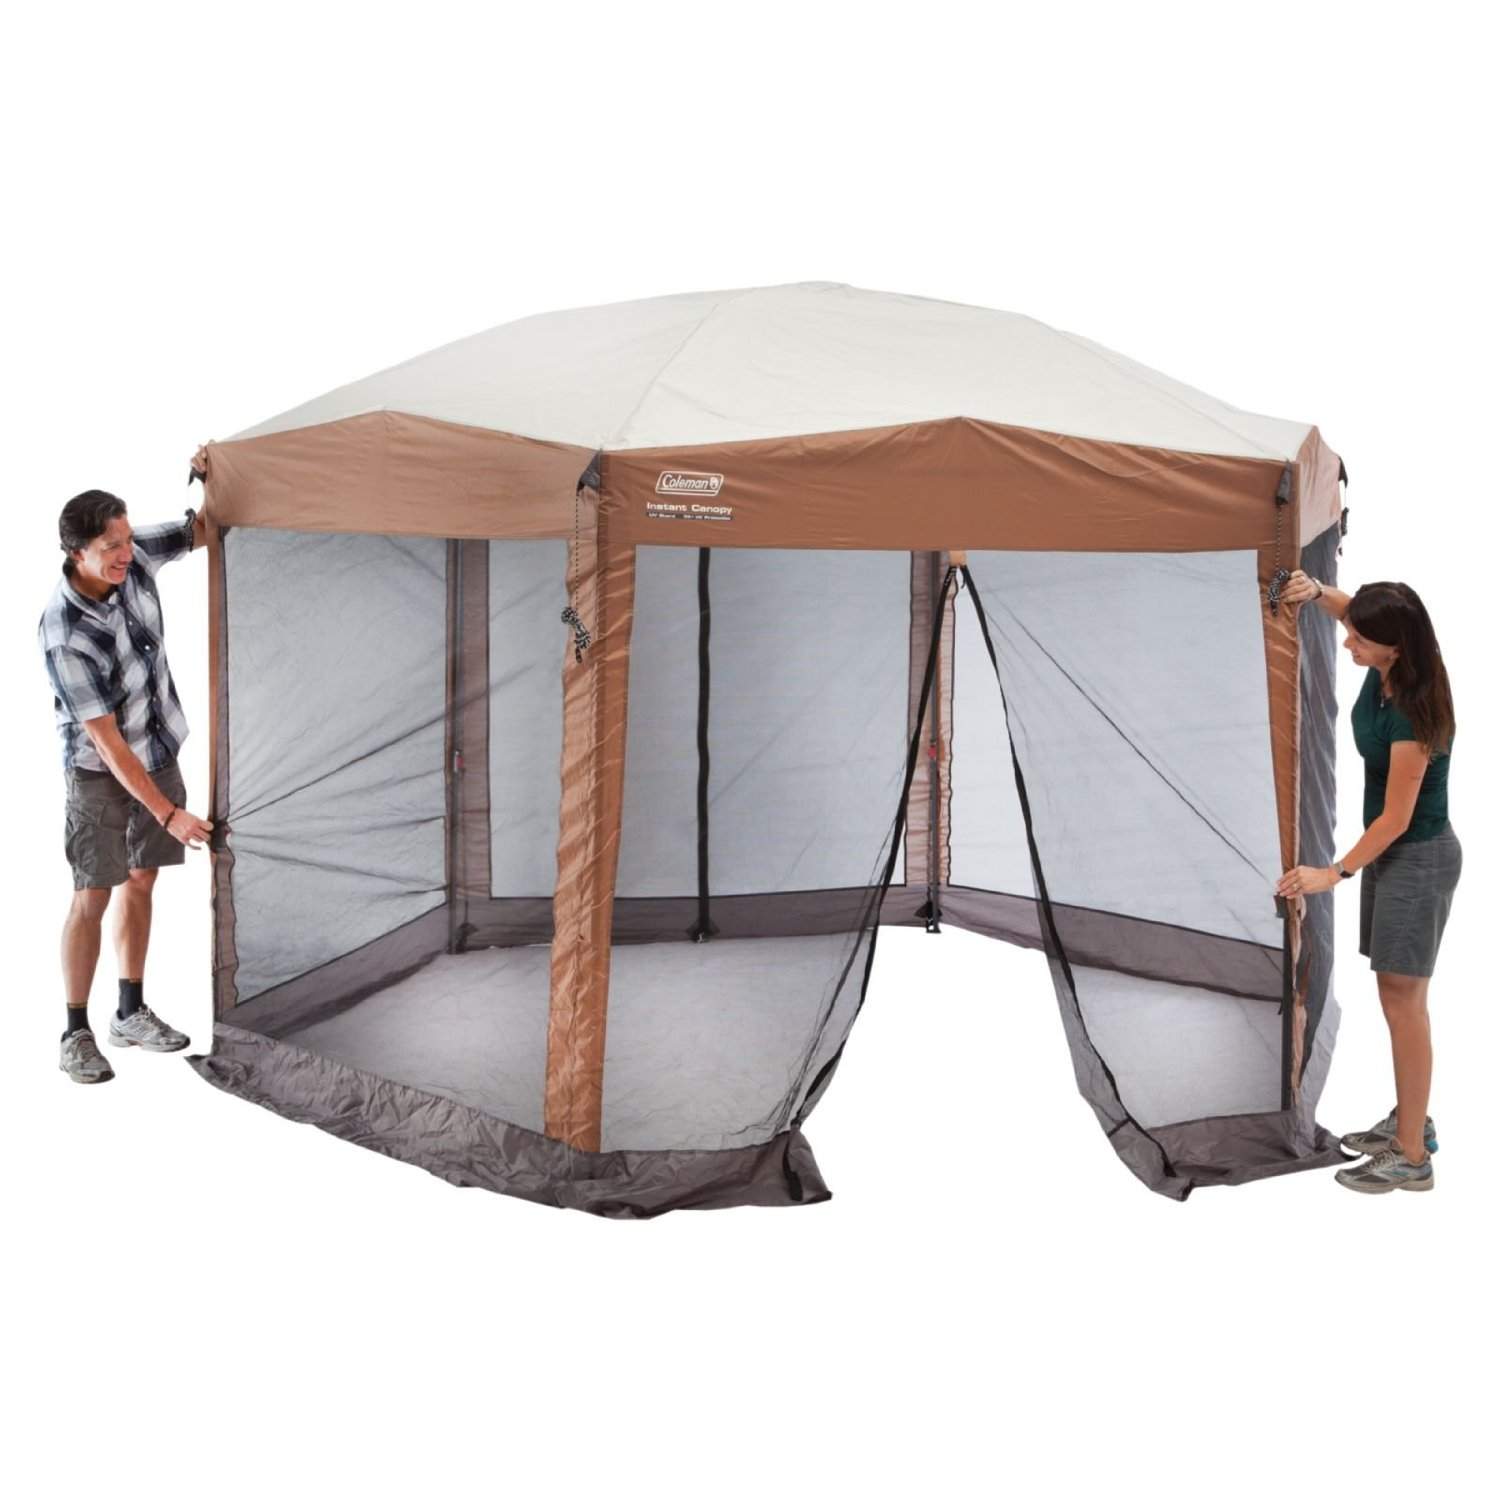 Coleman Back Home 12 x 10-Foot Instant Screen House Hexagon Canopy | 2000028003